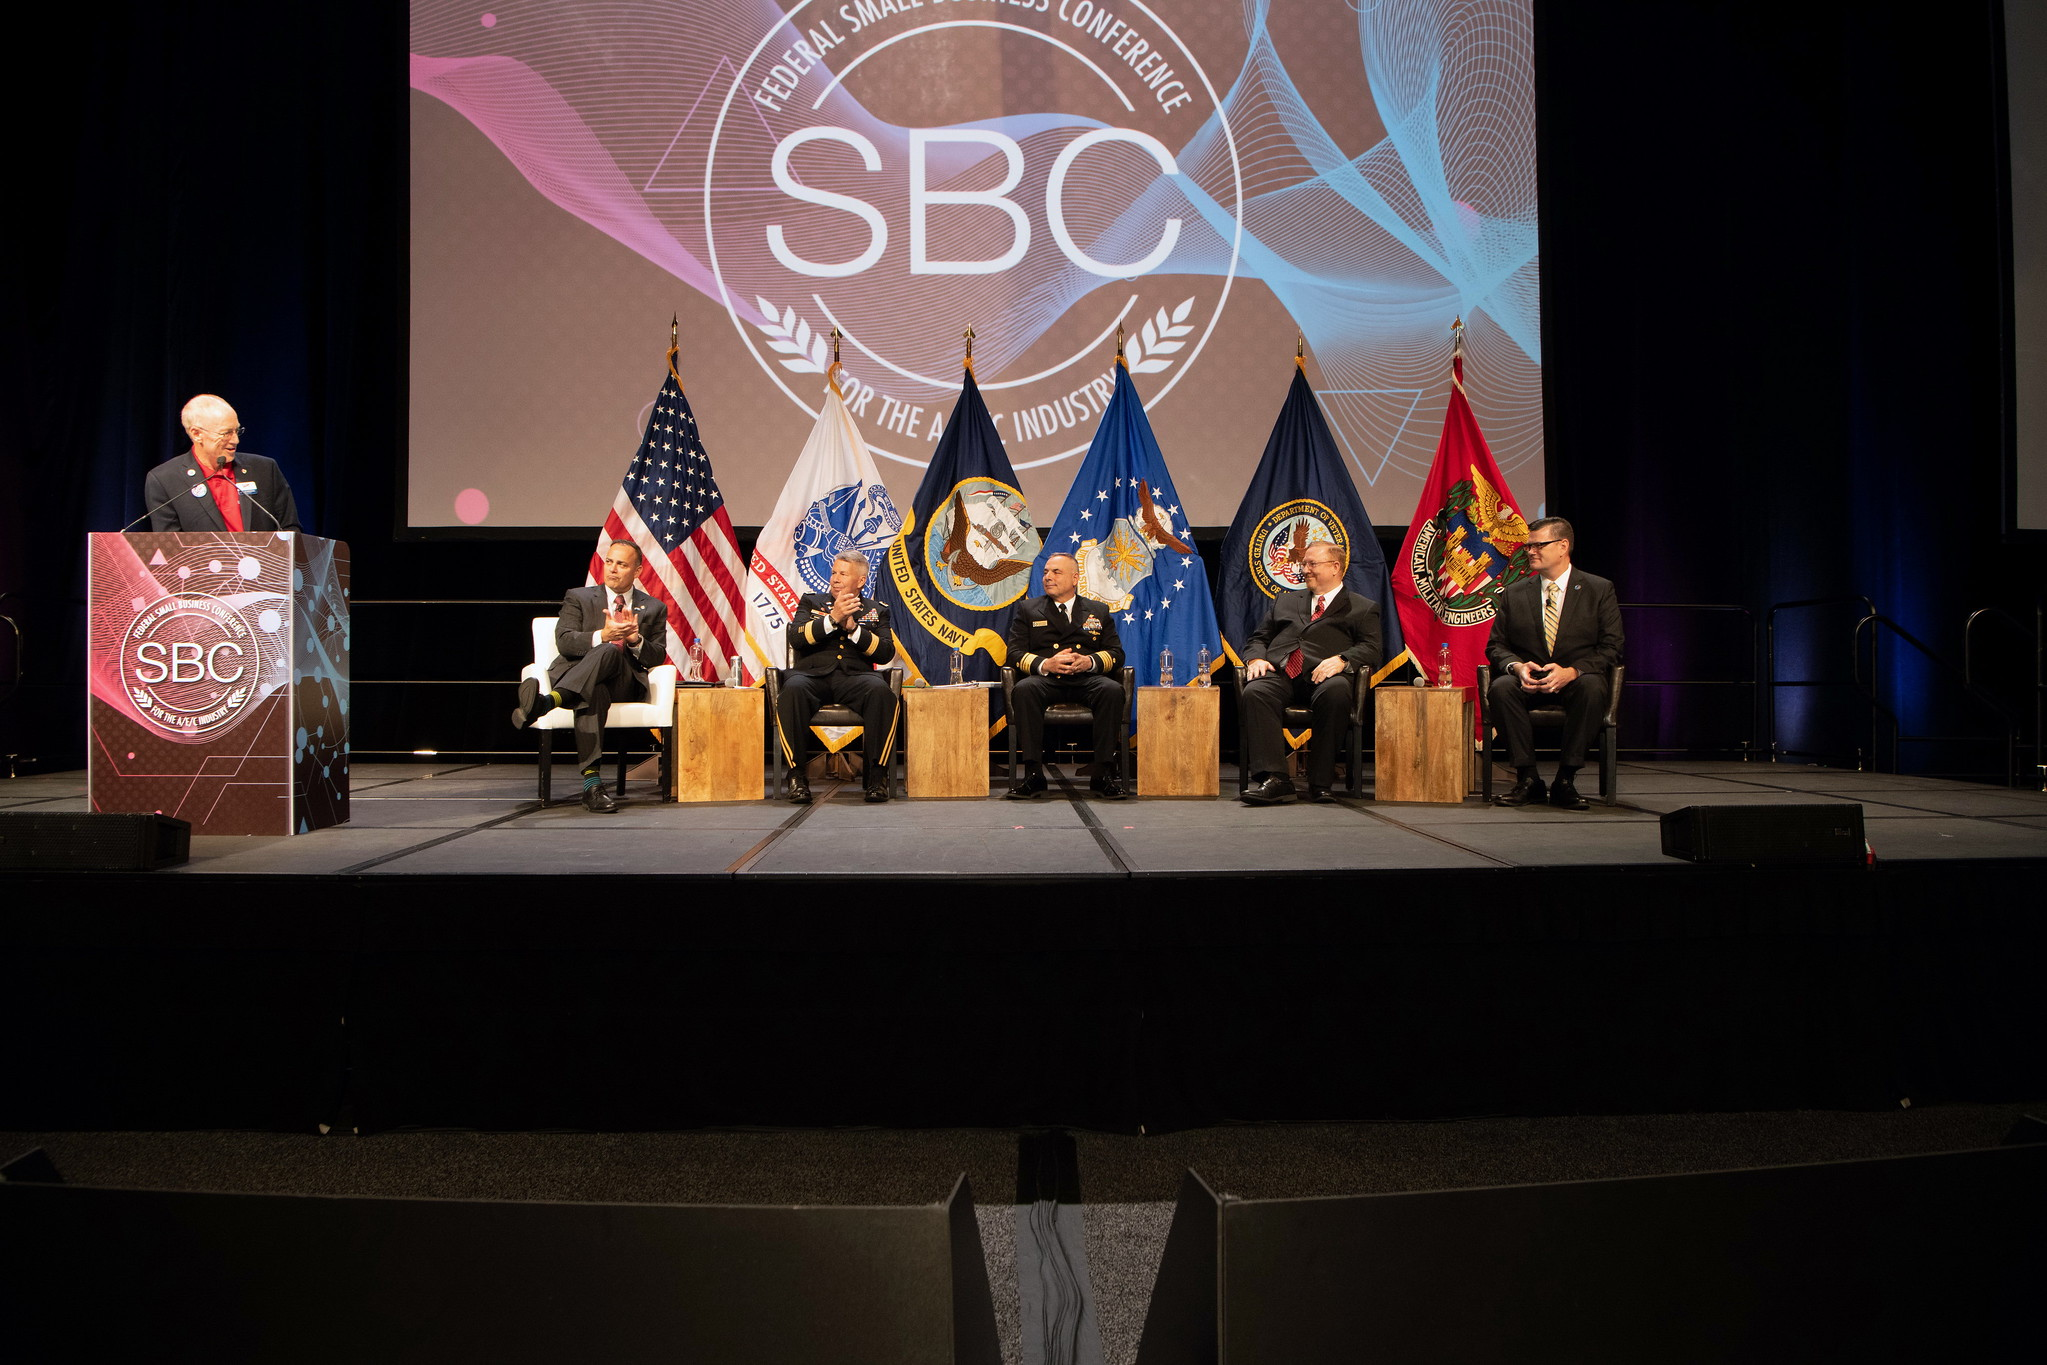 <h3>Why Military & Government Employees<br>Should Attend</h3>